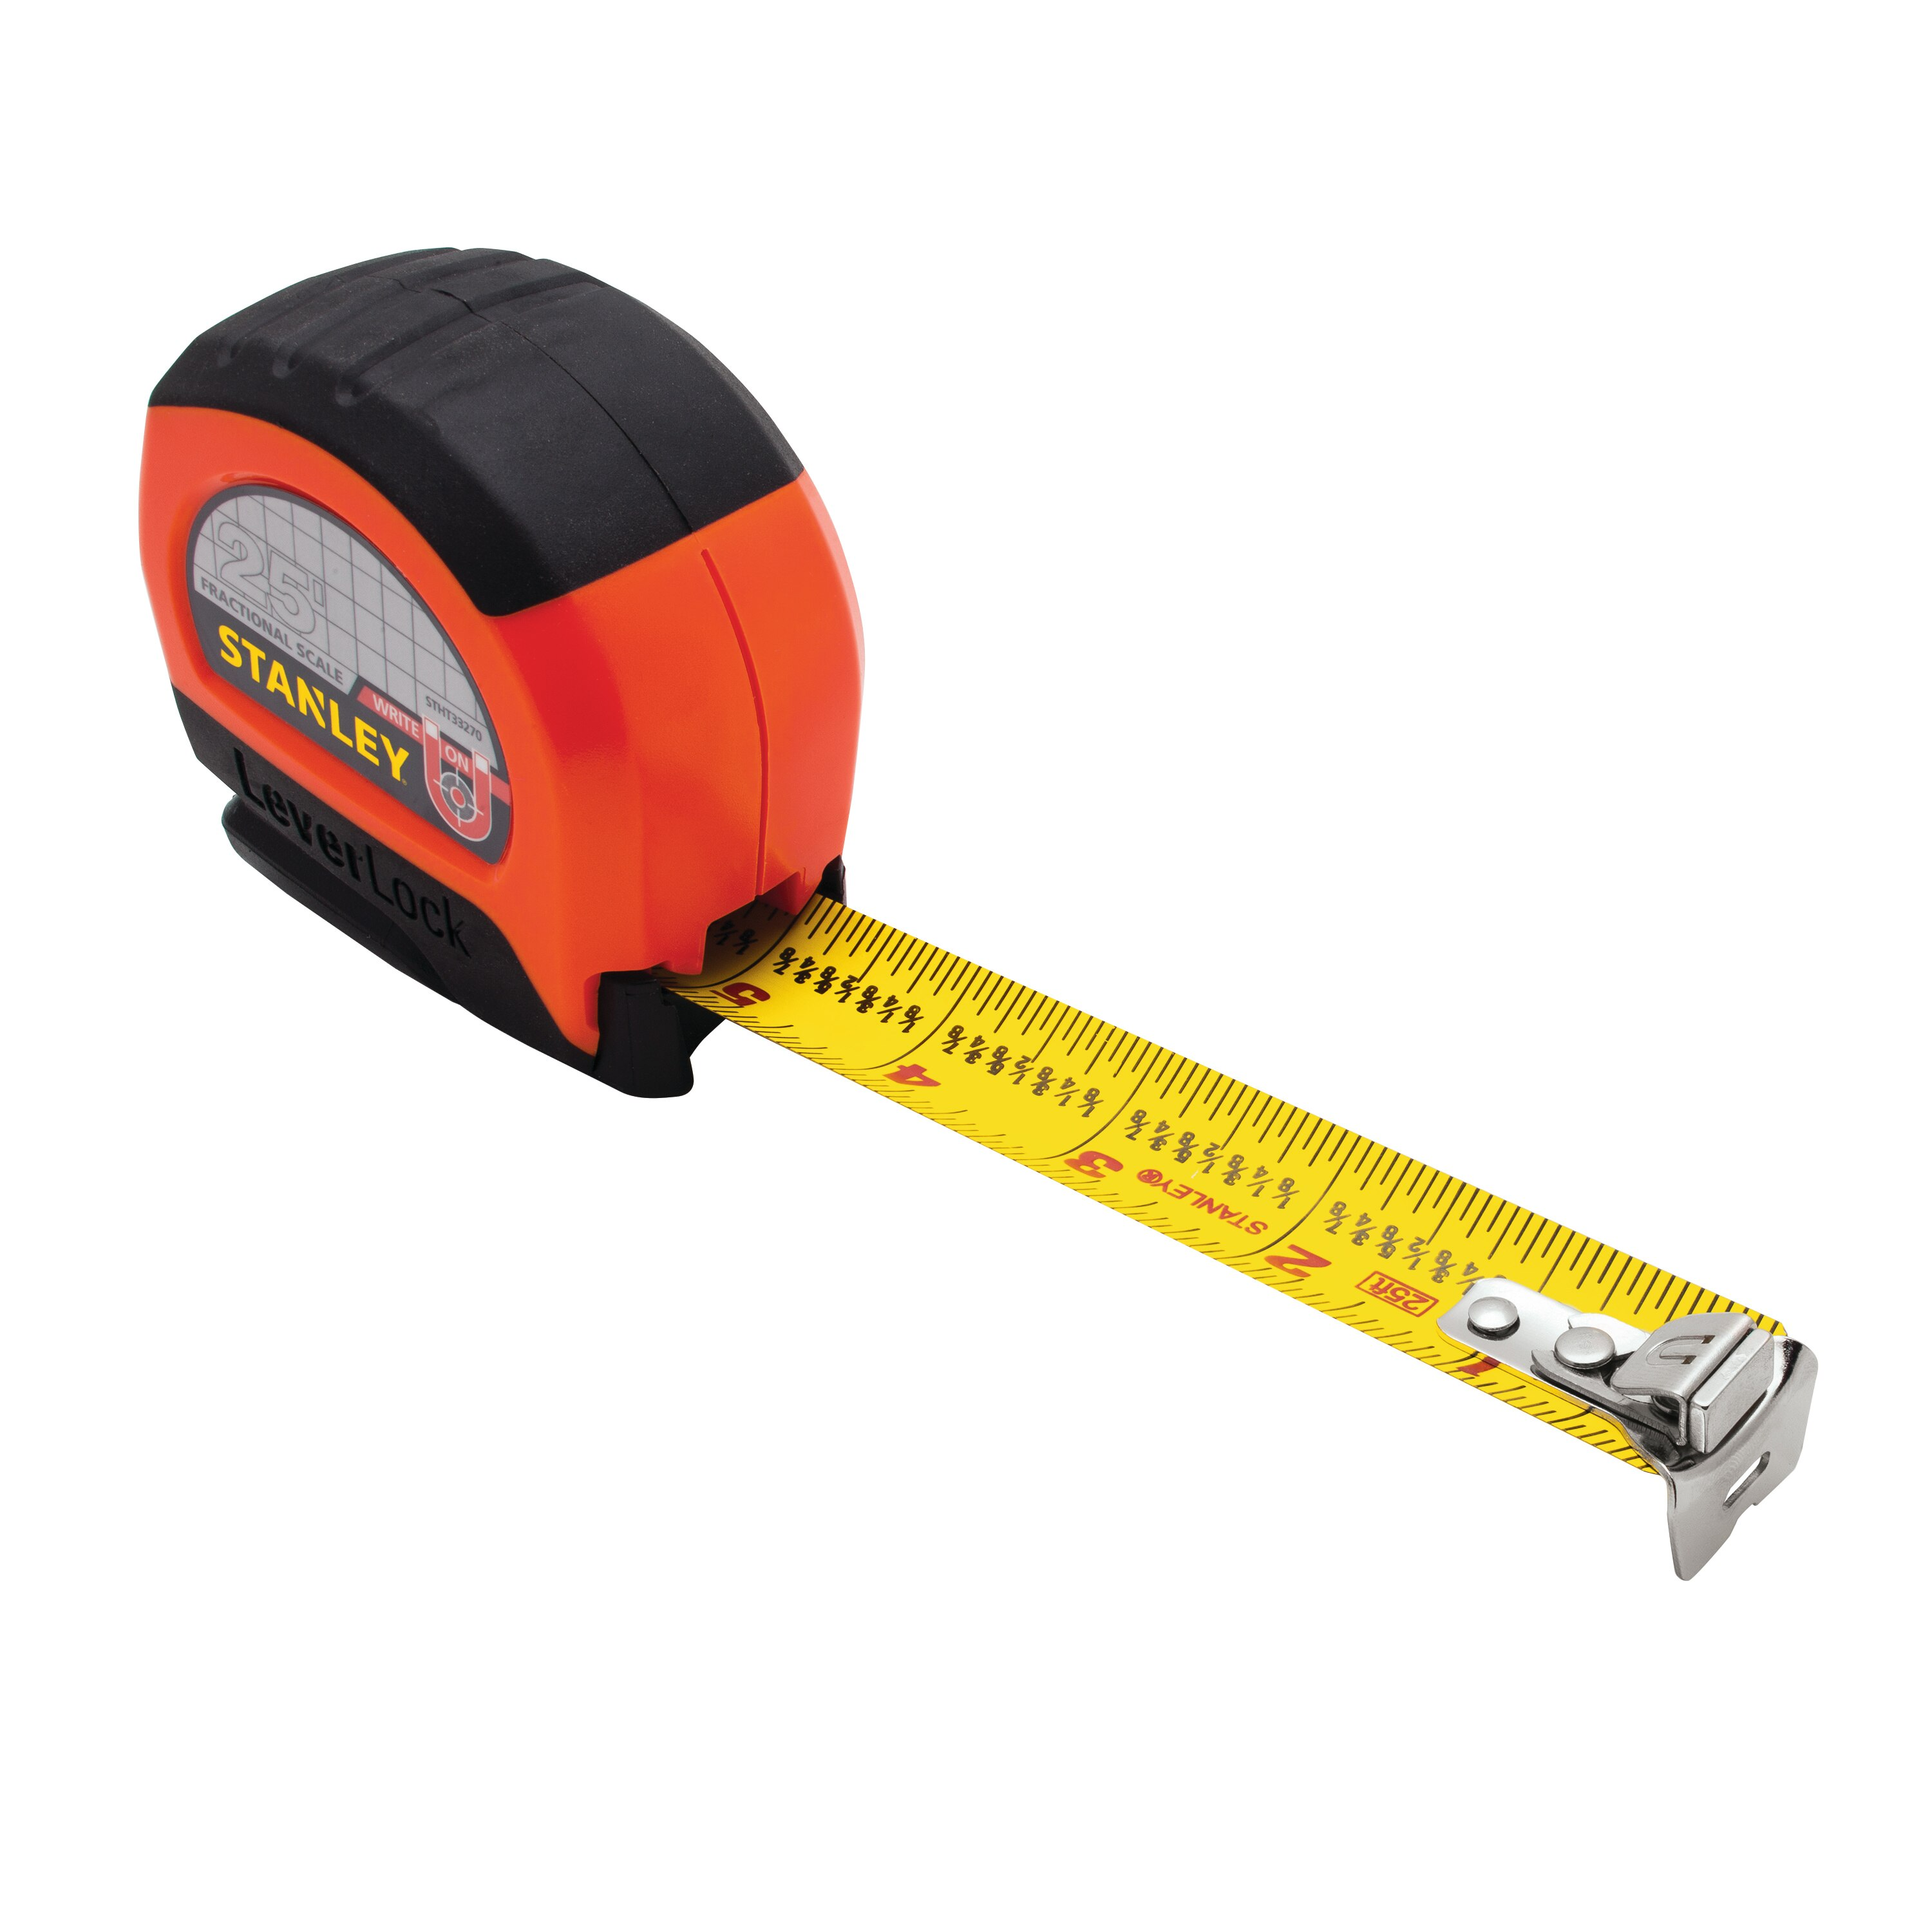 Stanley Tools - 25 ft Magnetic Tip  Fractional Read LEVERLOCK Tape Measure - STHT33270